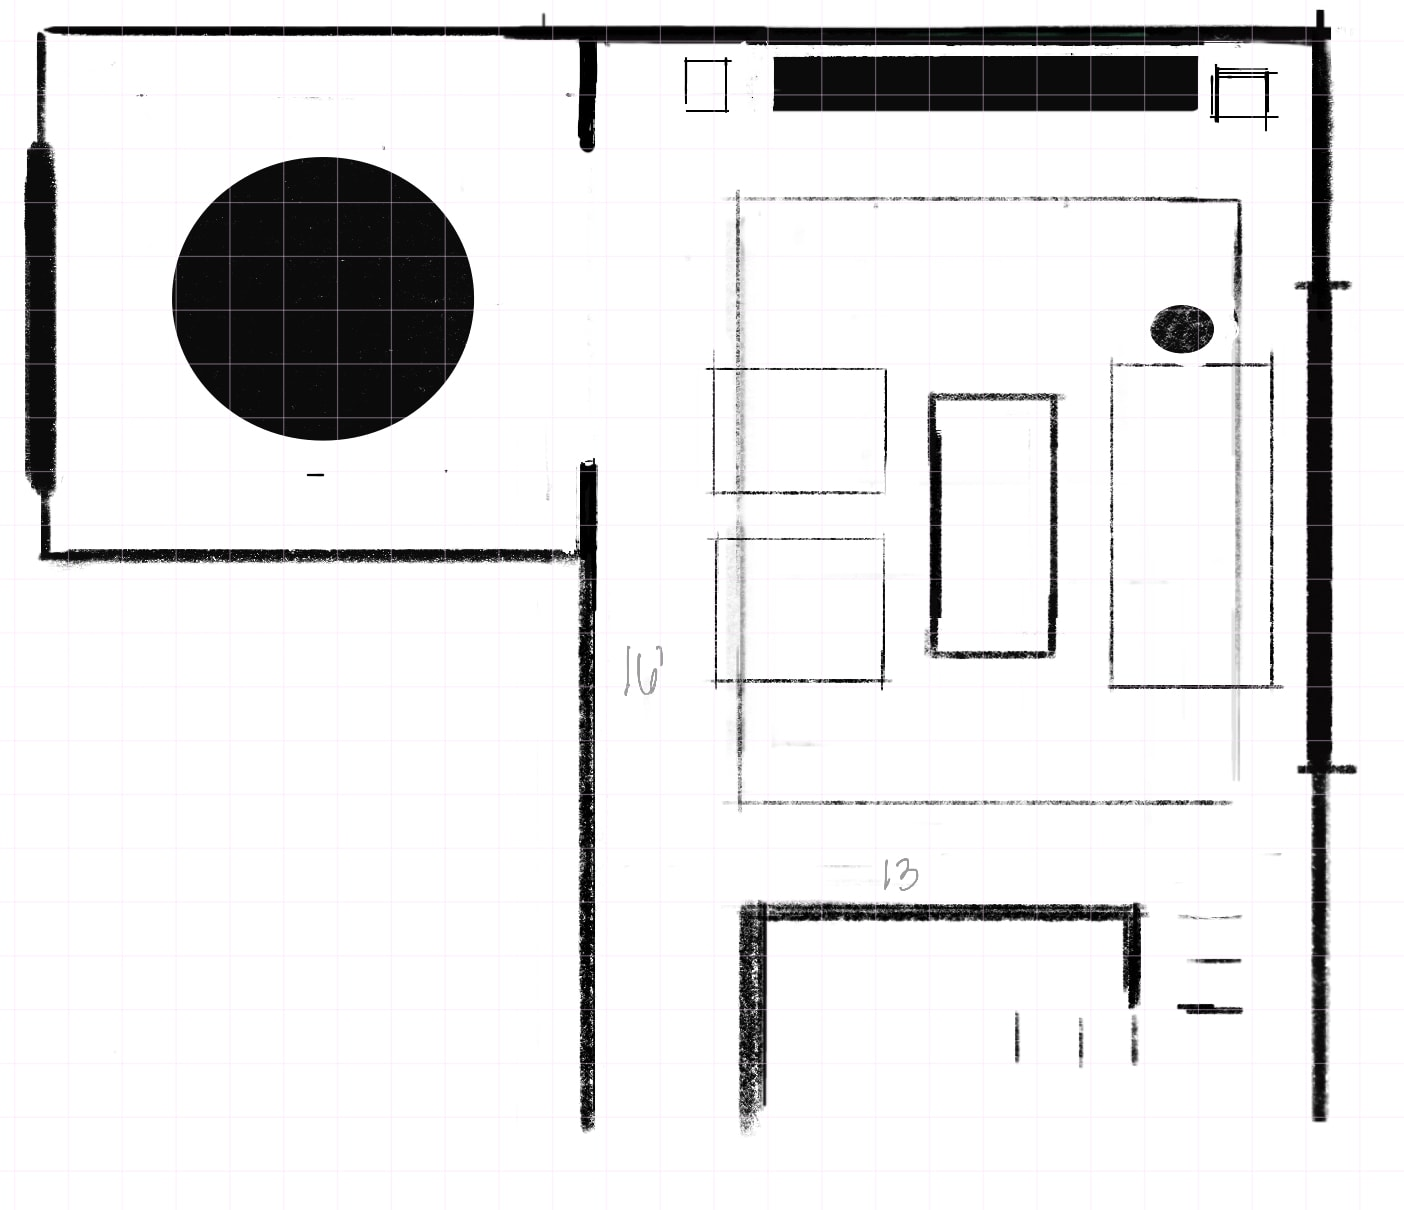 floor-plan-living-room-sketch